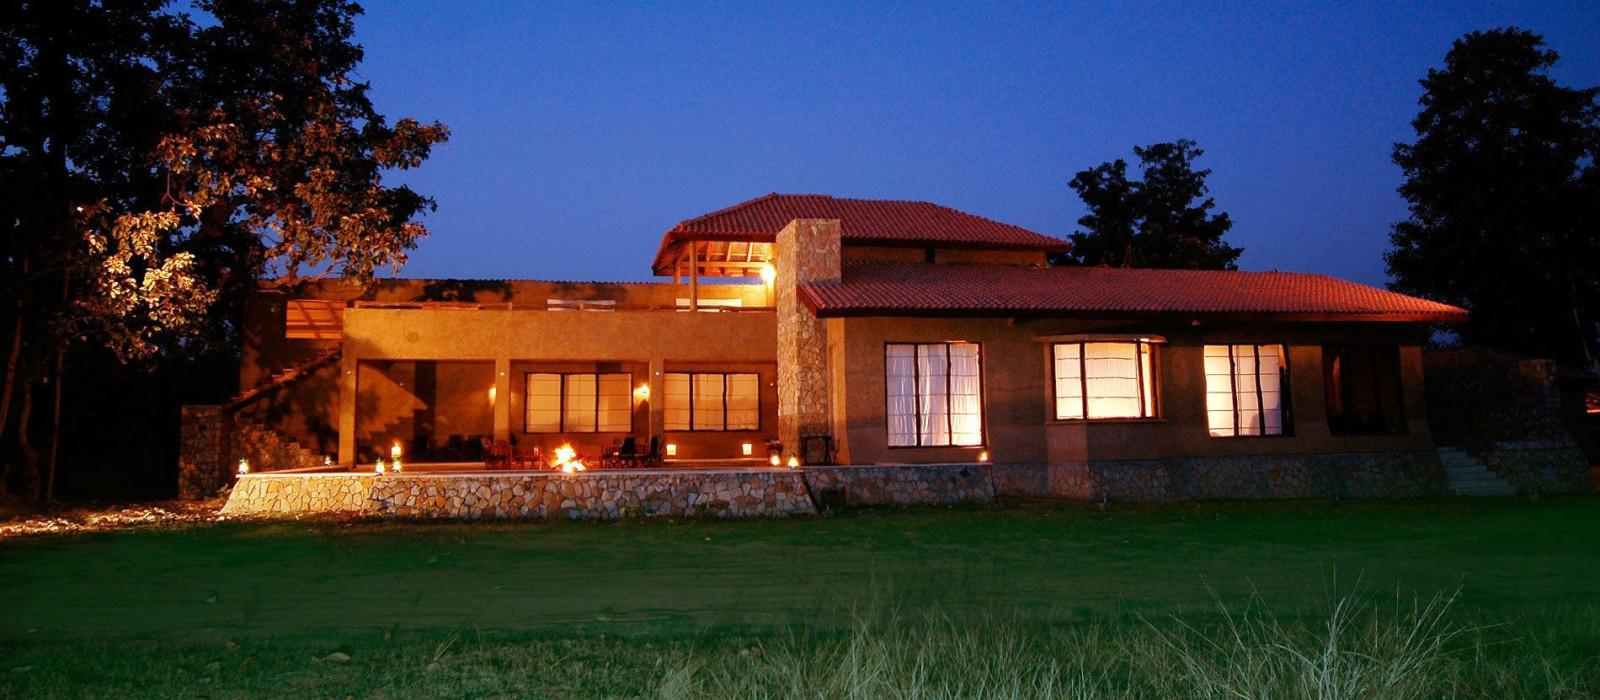 Hotel Kings Lodge Nordindien